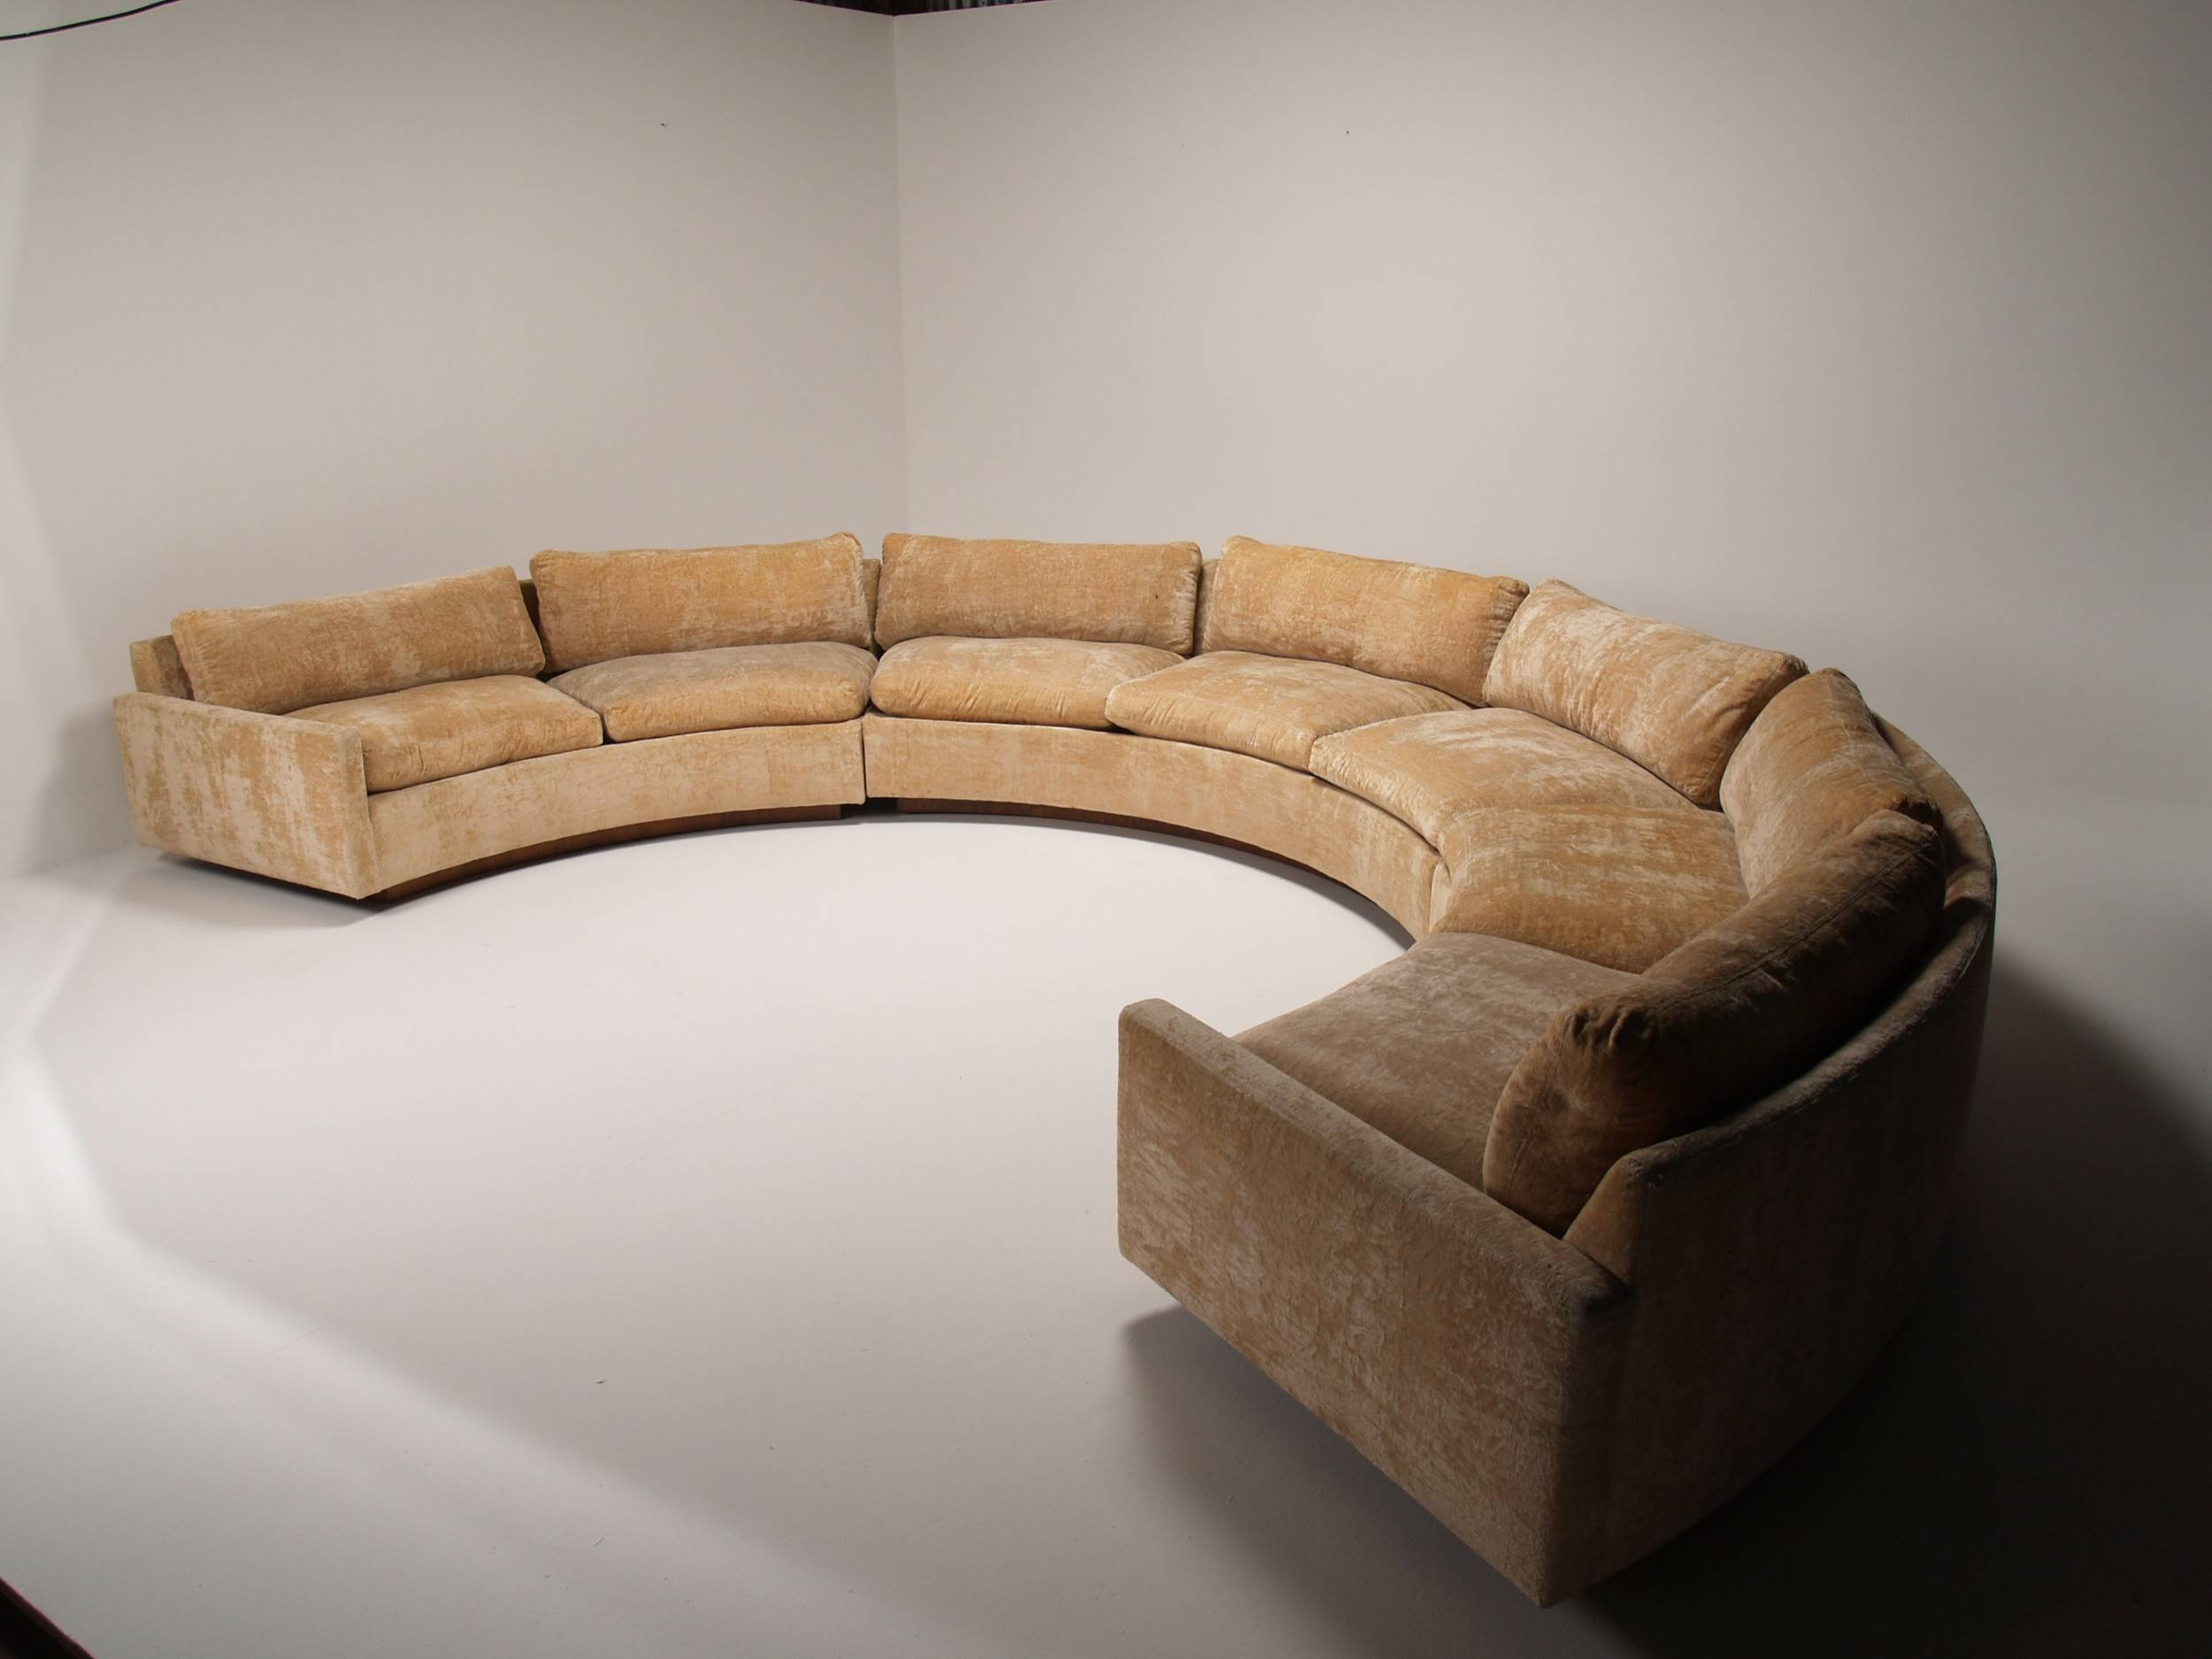 Craigslist Leather Sofa Craigslist Er Is Making A Truly Bizarre